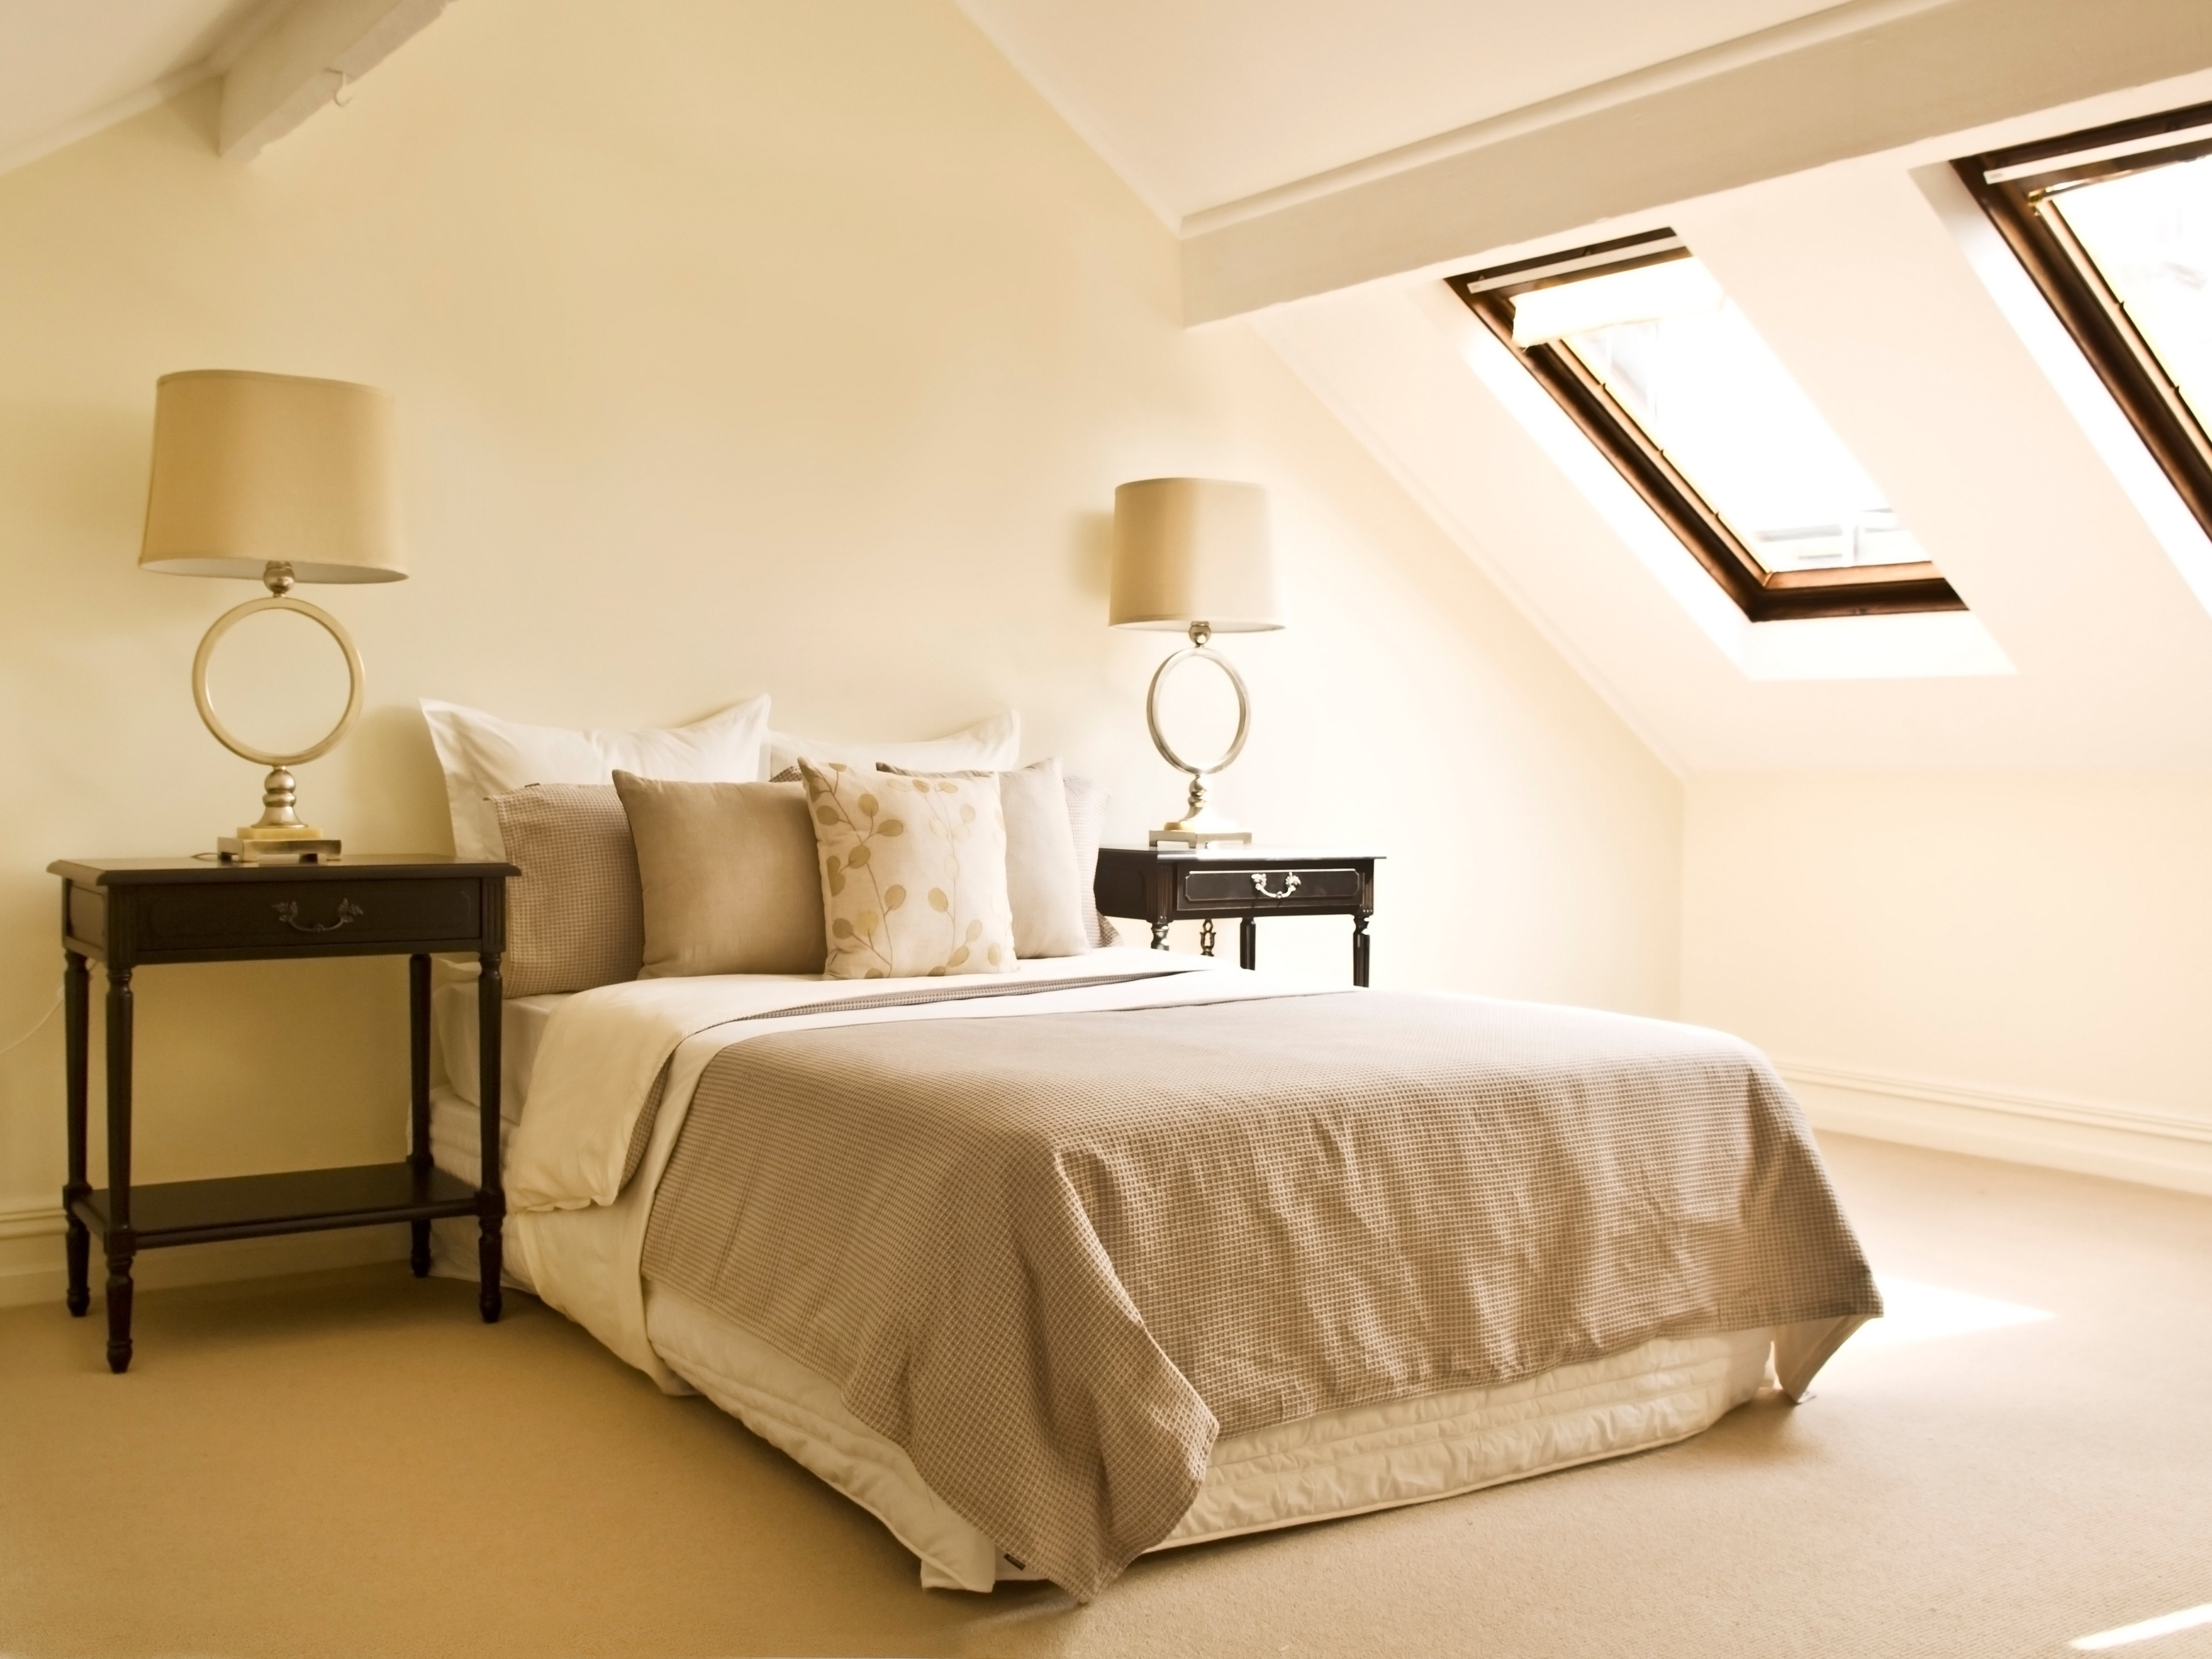 Featured Image of Attic Bedroom Interior Remodel For Small Space Solution